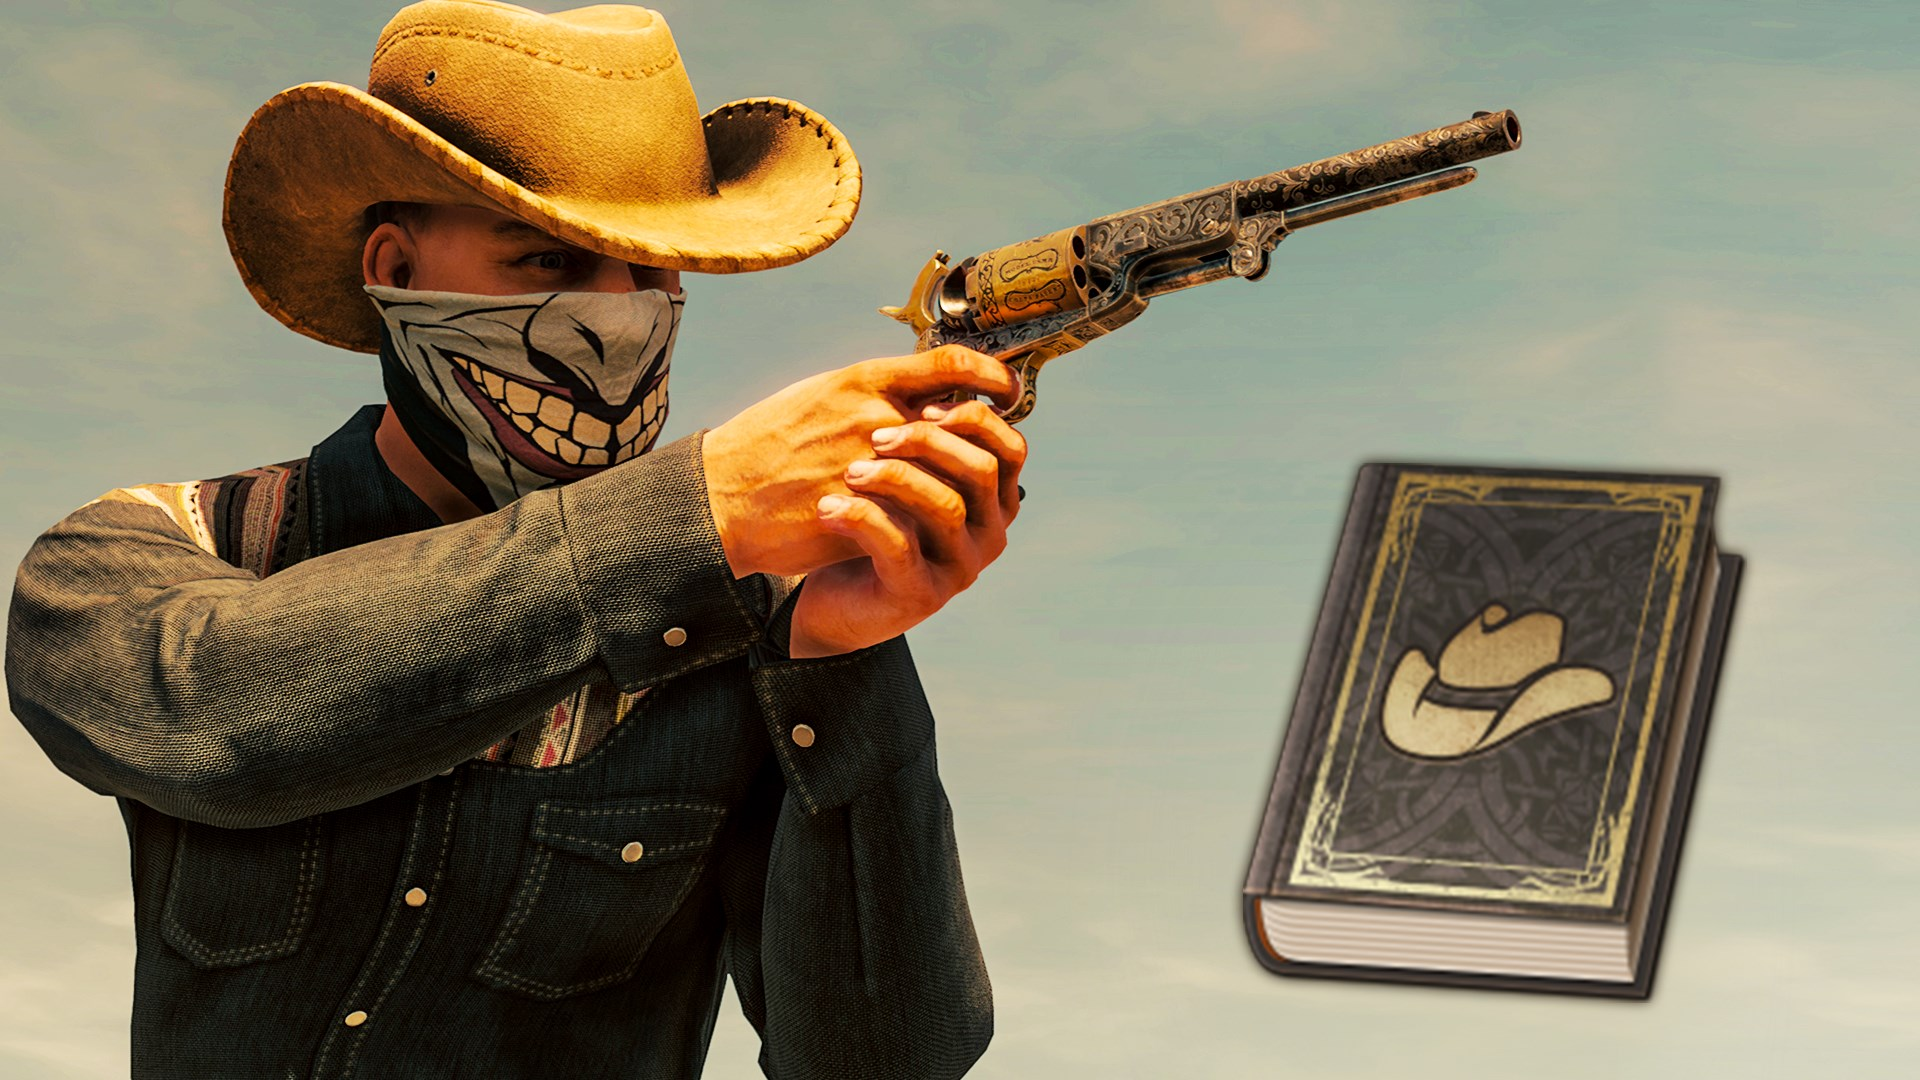 Cuisine Royale Malware Buy Cuisine Royale The Weird West Stories Book Microsoft Store En Ca